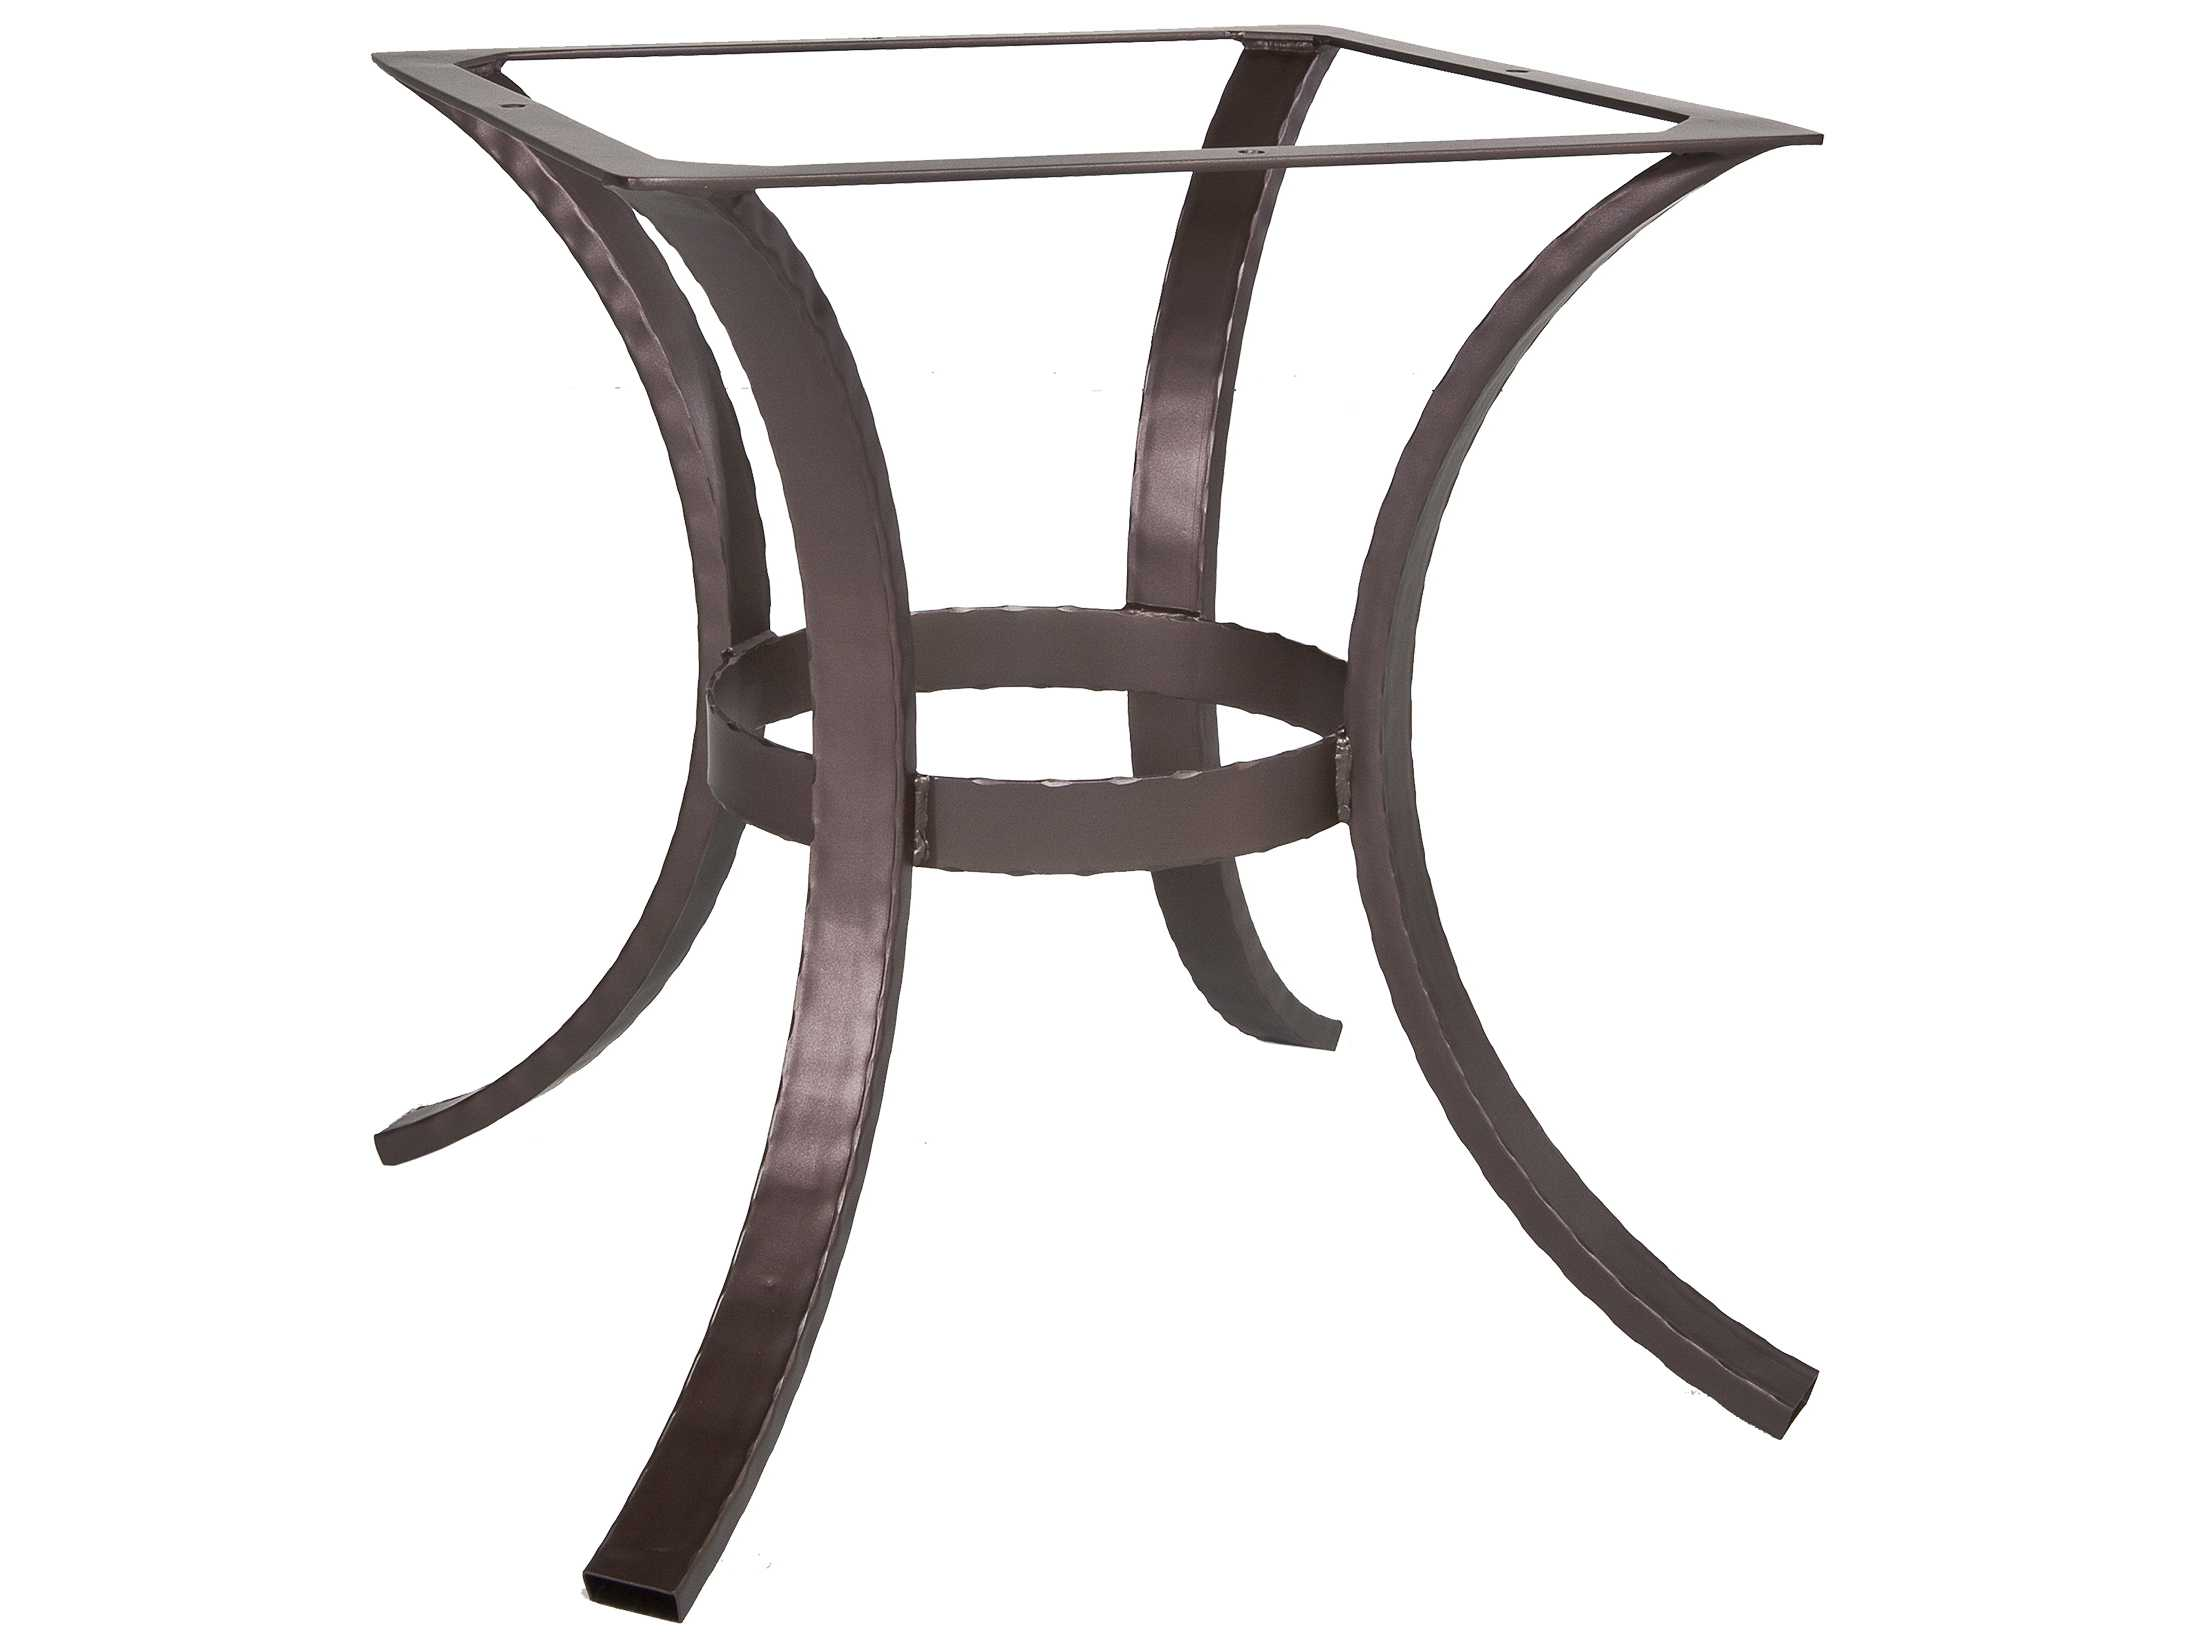 ow lee hammered wrought iron 03 dining table base hi dt03. Black Bedroom Furniture Sets. Home Design Ideas